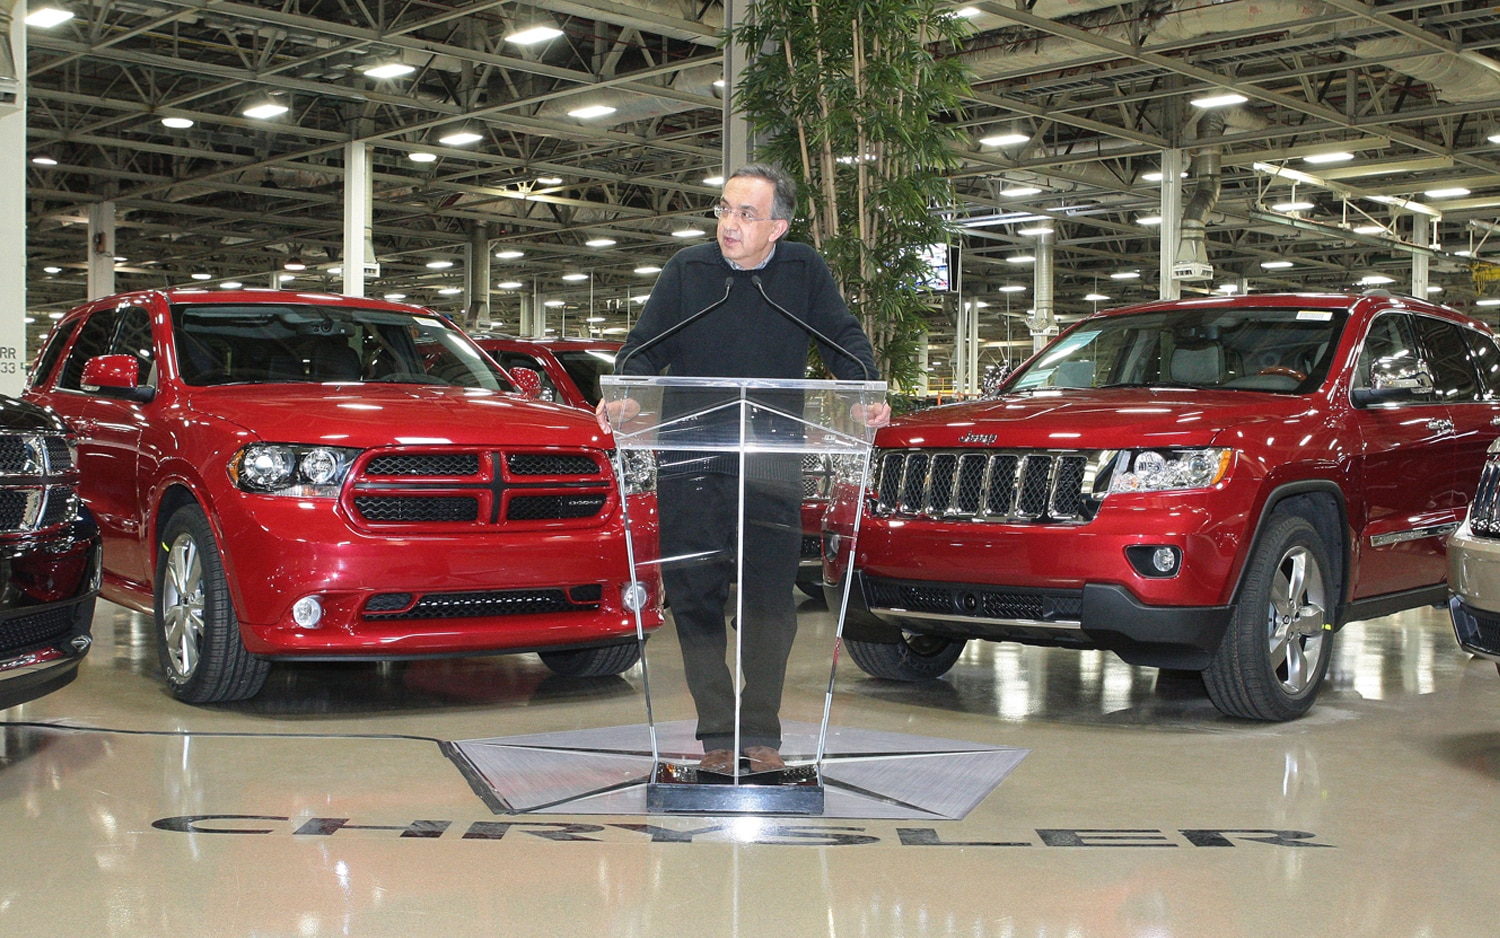 2011 Jeep Grand Cherokee Dodge Durango Sergio Marchionne1